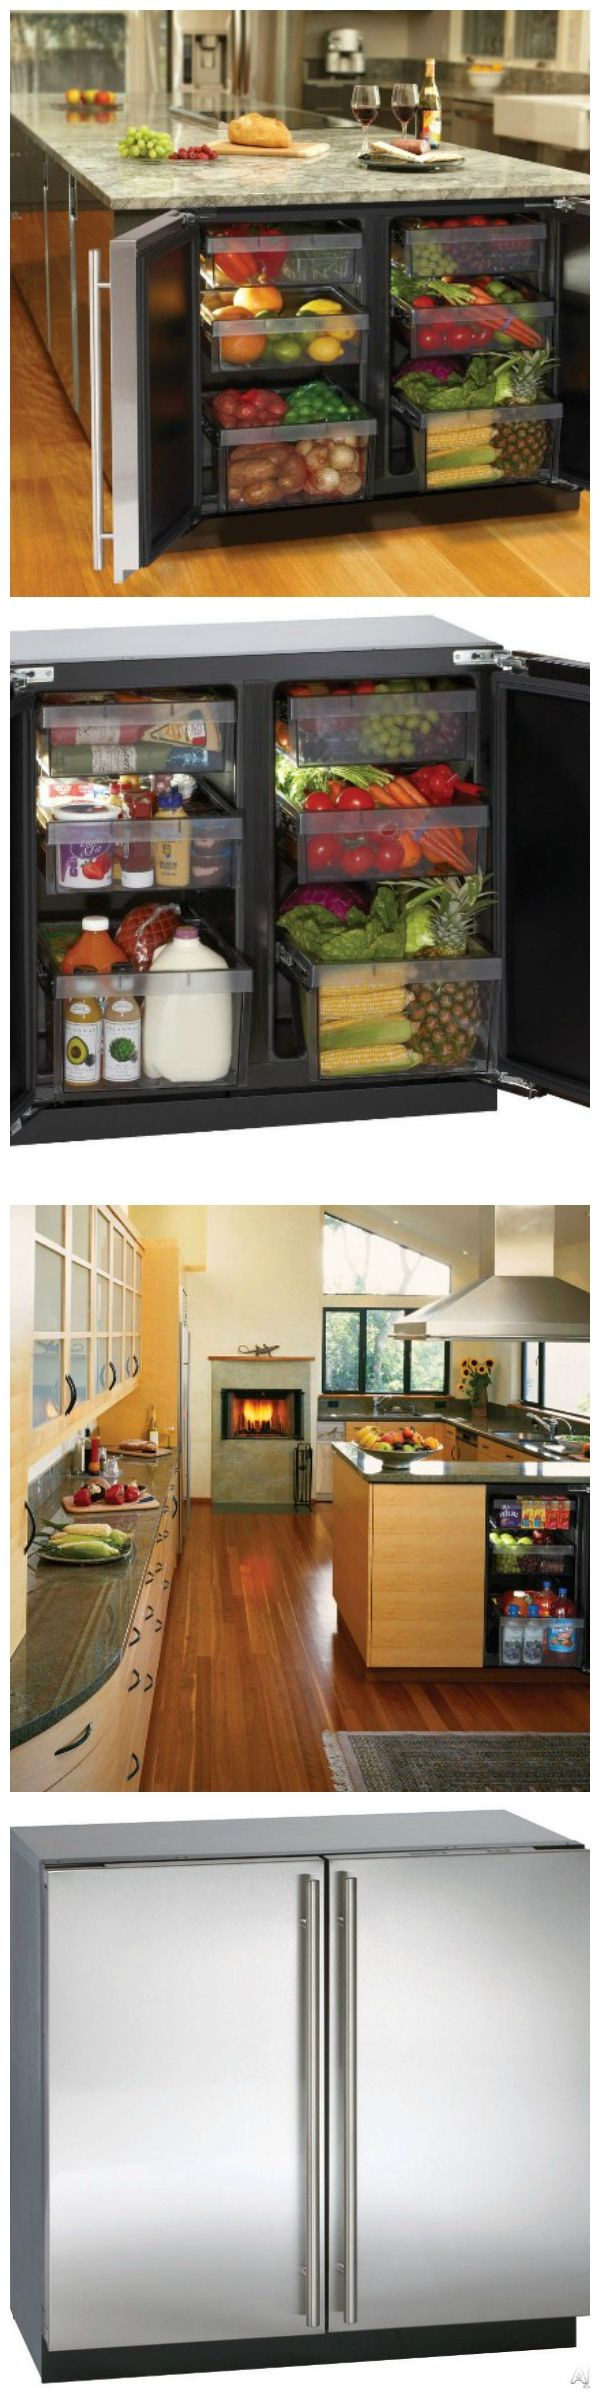 #Innovative #Undercounter #Refrigerator #kitchen #fridge #decor #interior #design #home #house